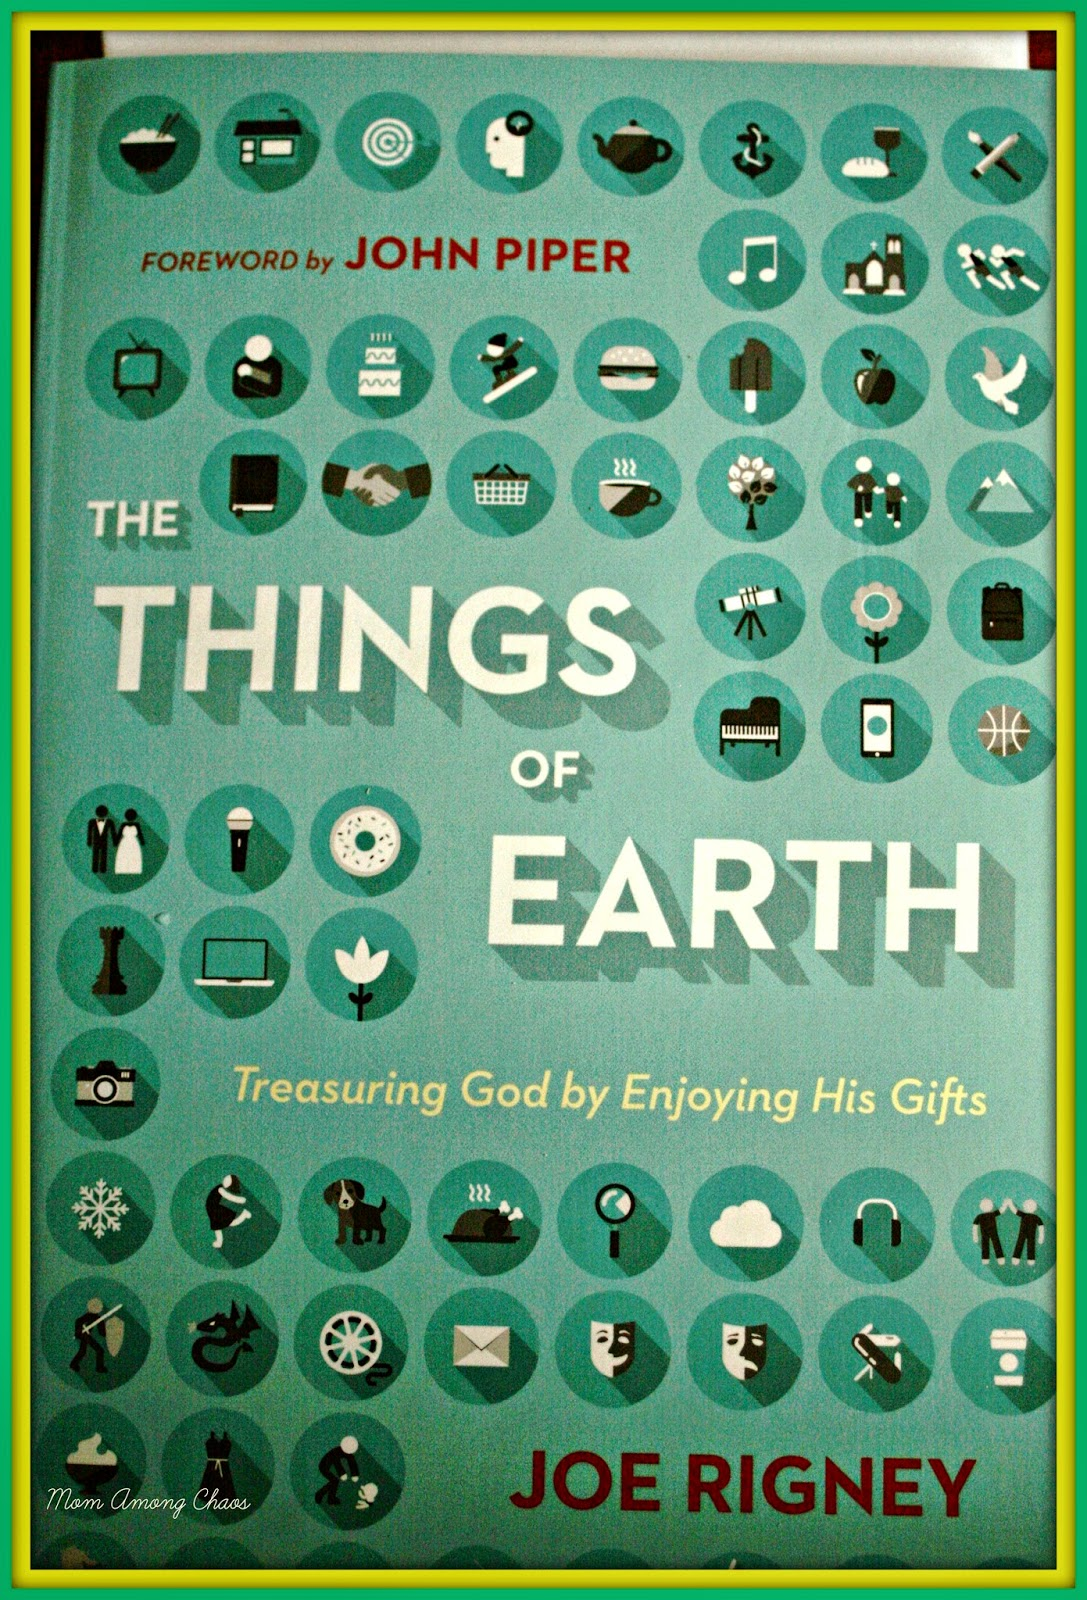 FCblogger, Family Christian, book review, The Things of Earth, Joe Rigney